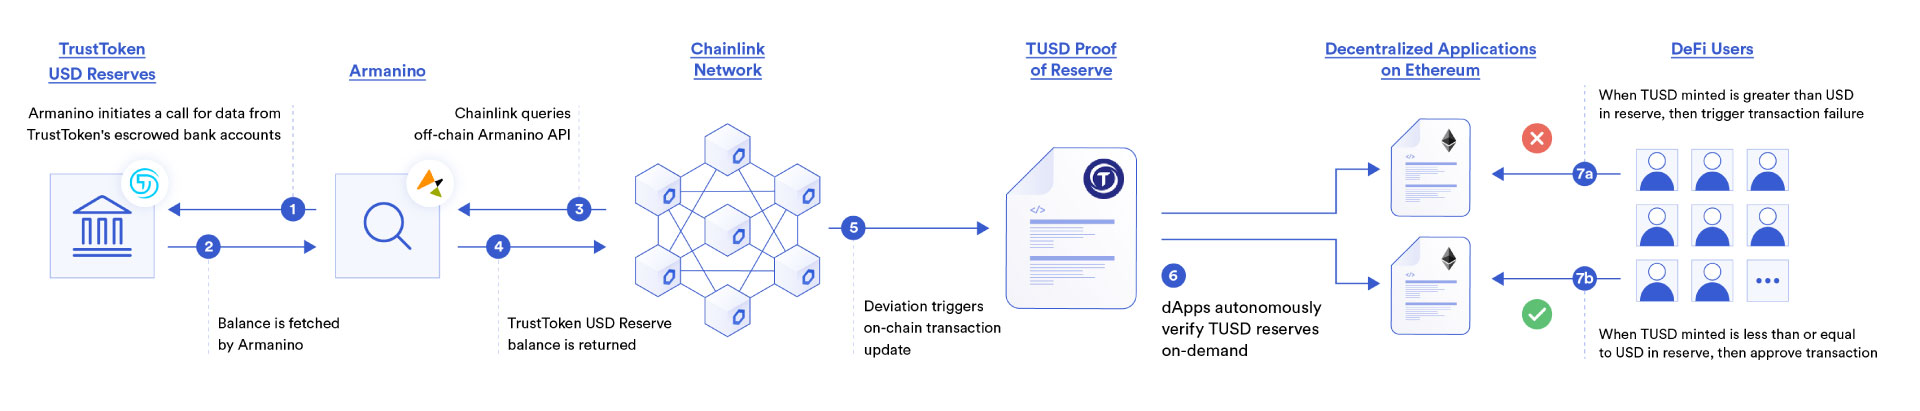 DeFi TUSD stablecoin using Chainlink Proof of Reserve